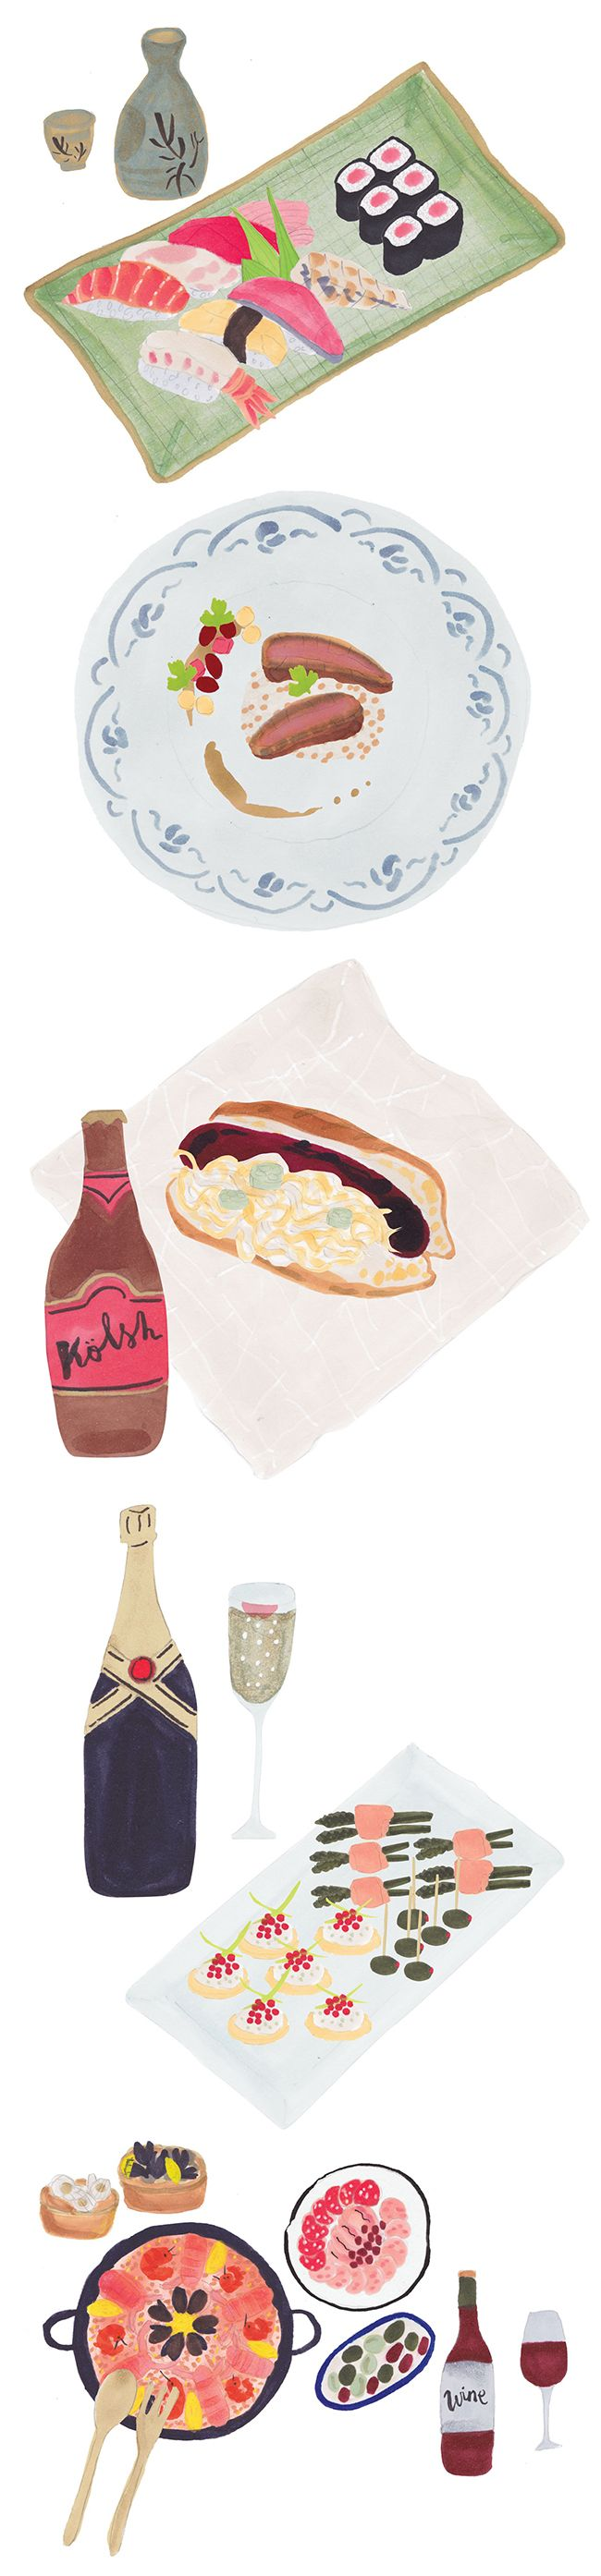 Food illustrations for the BEAMS Winter Gift Collection 2012 by Grace Lee